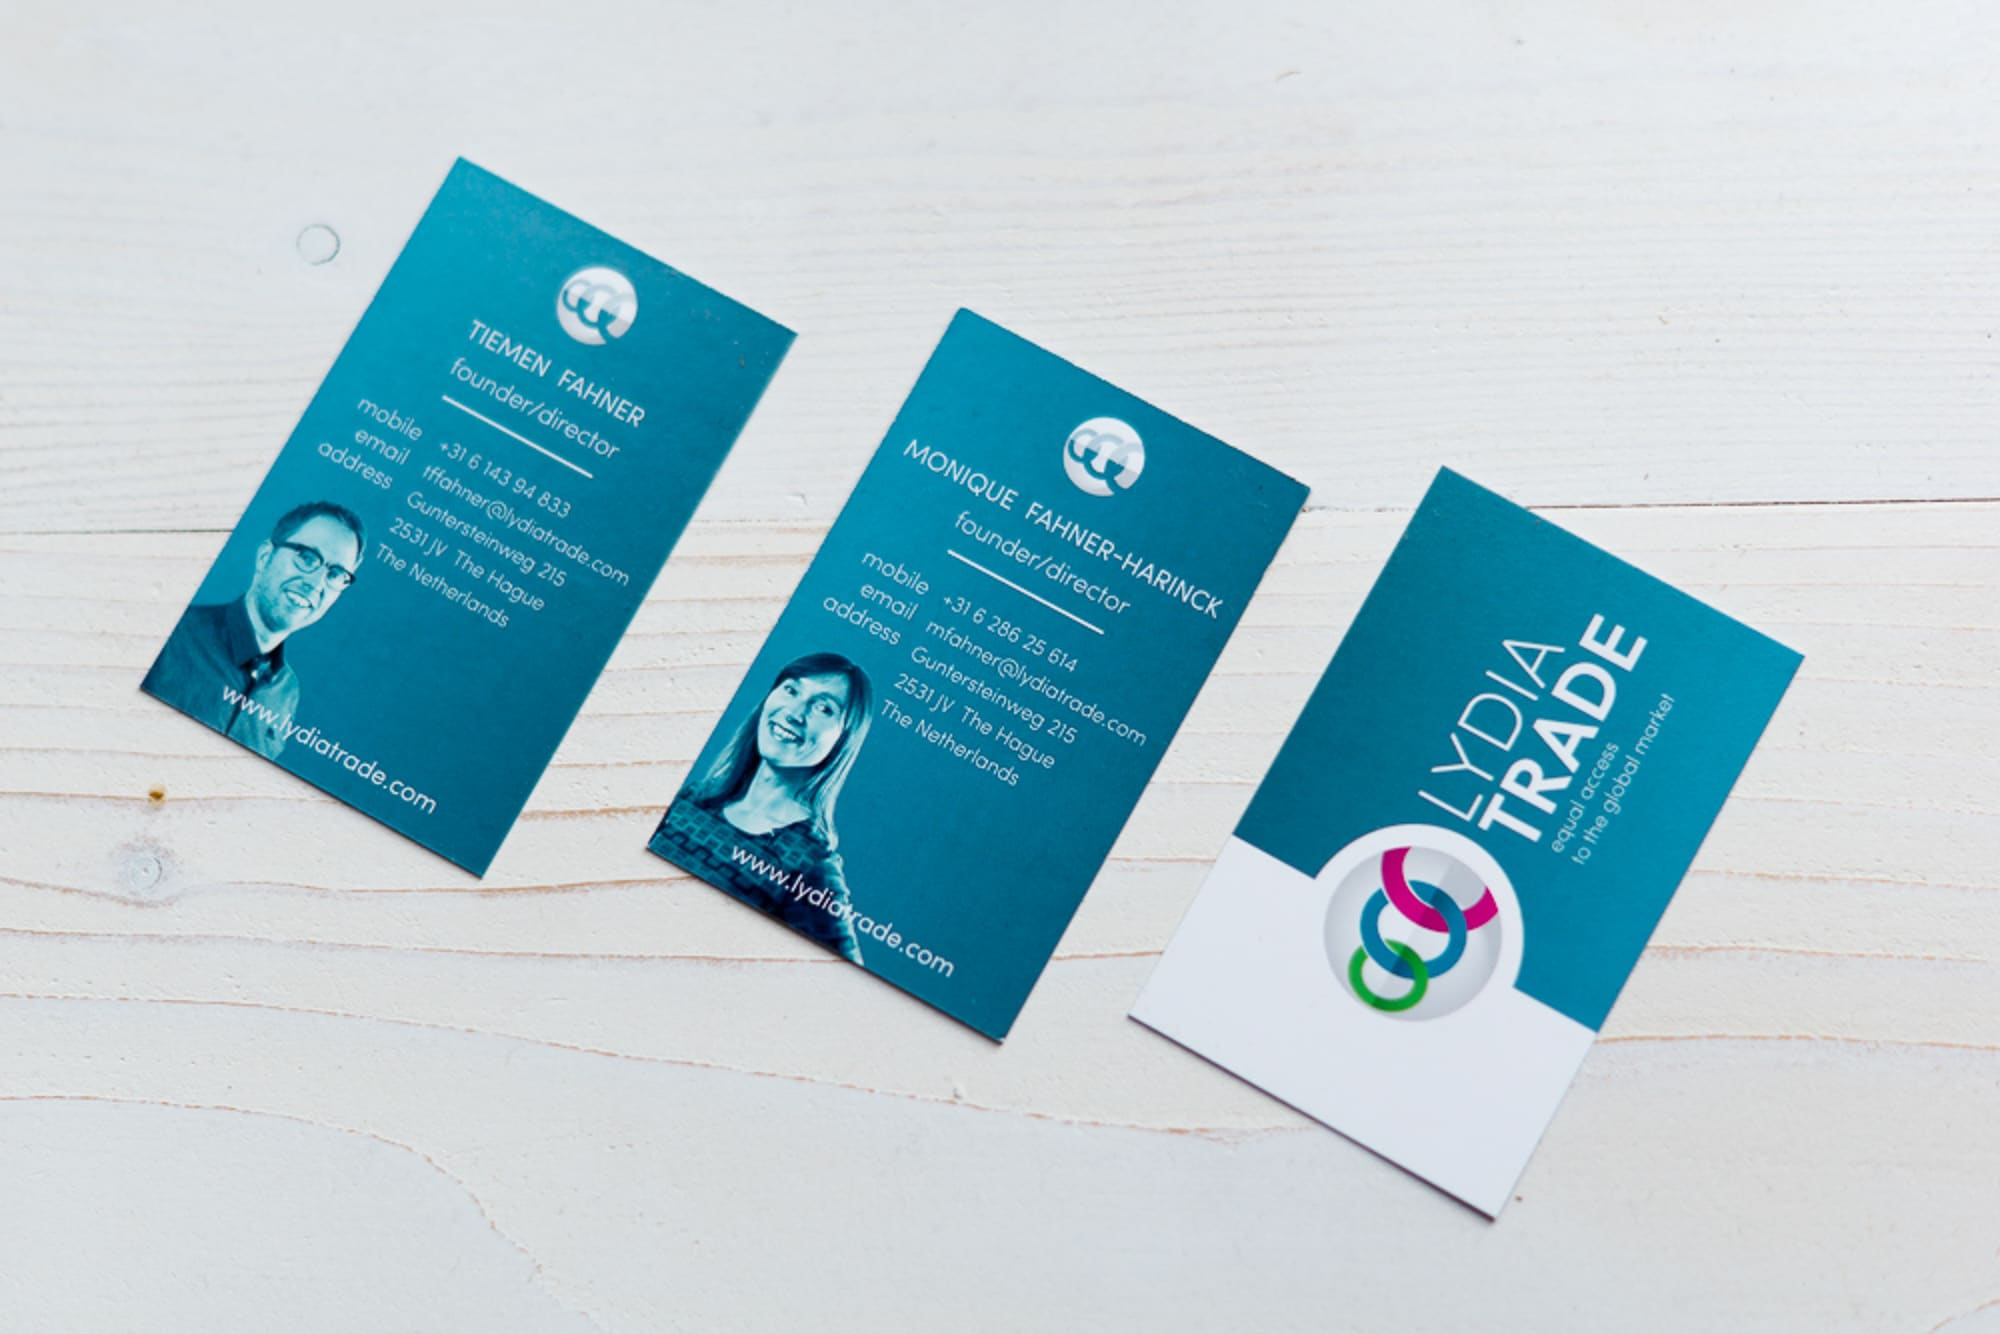 Business cards van Lydia Trade ontworpen door NOBLY Authentieke Communicatie & Creatie